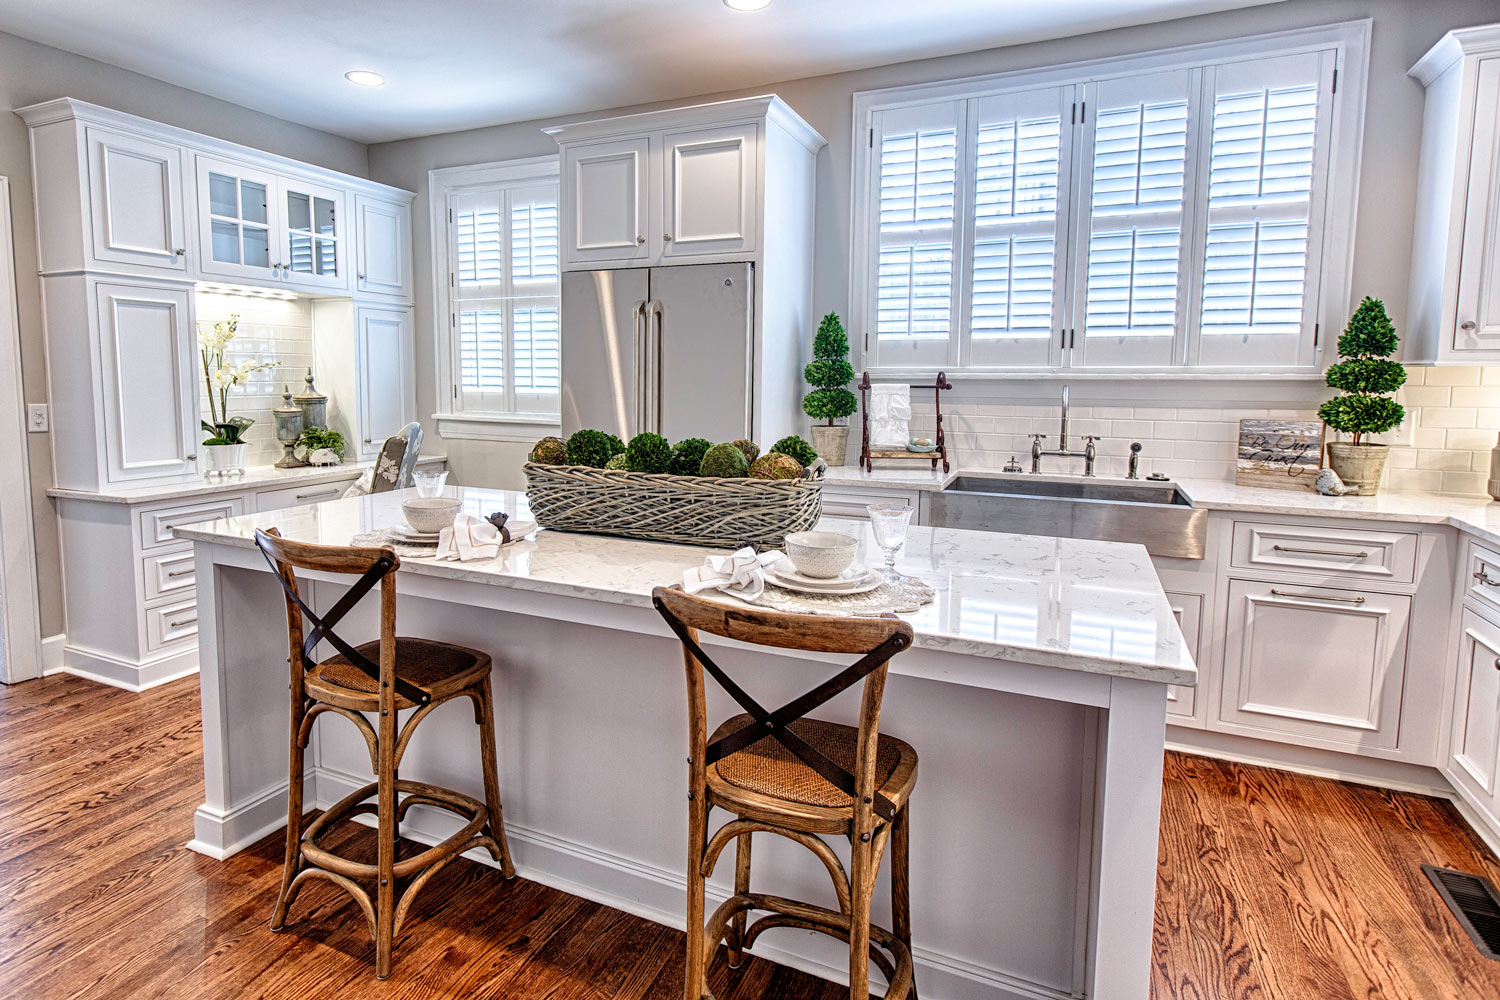 Cambria Tourquay countertops with Summit edge.